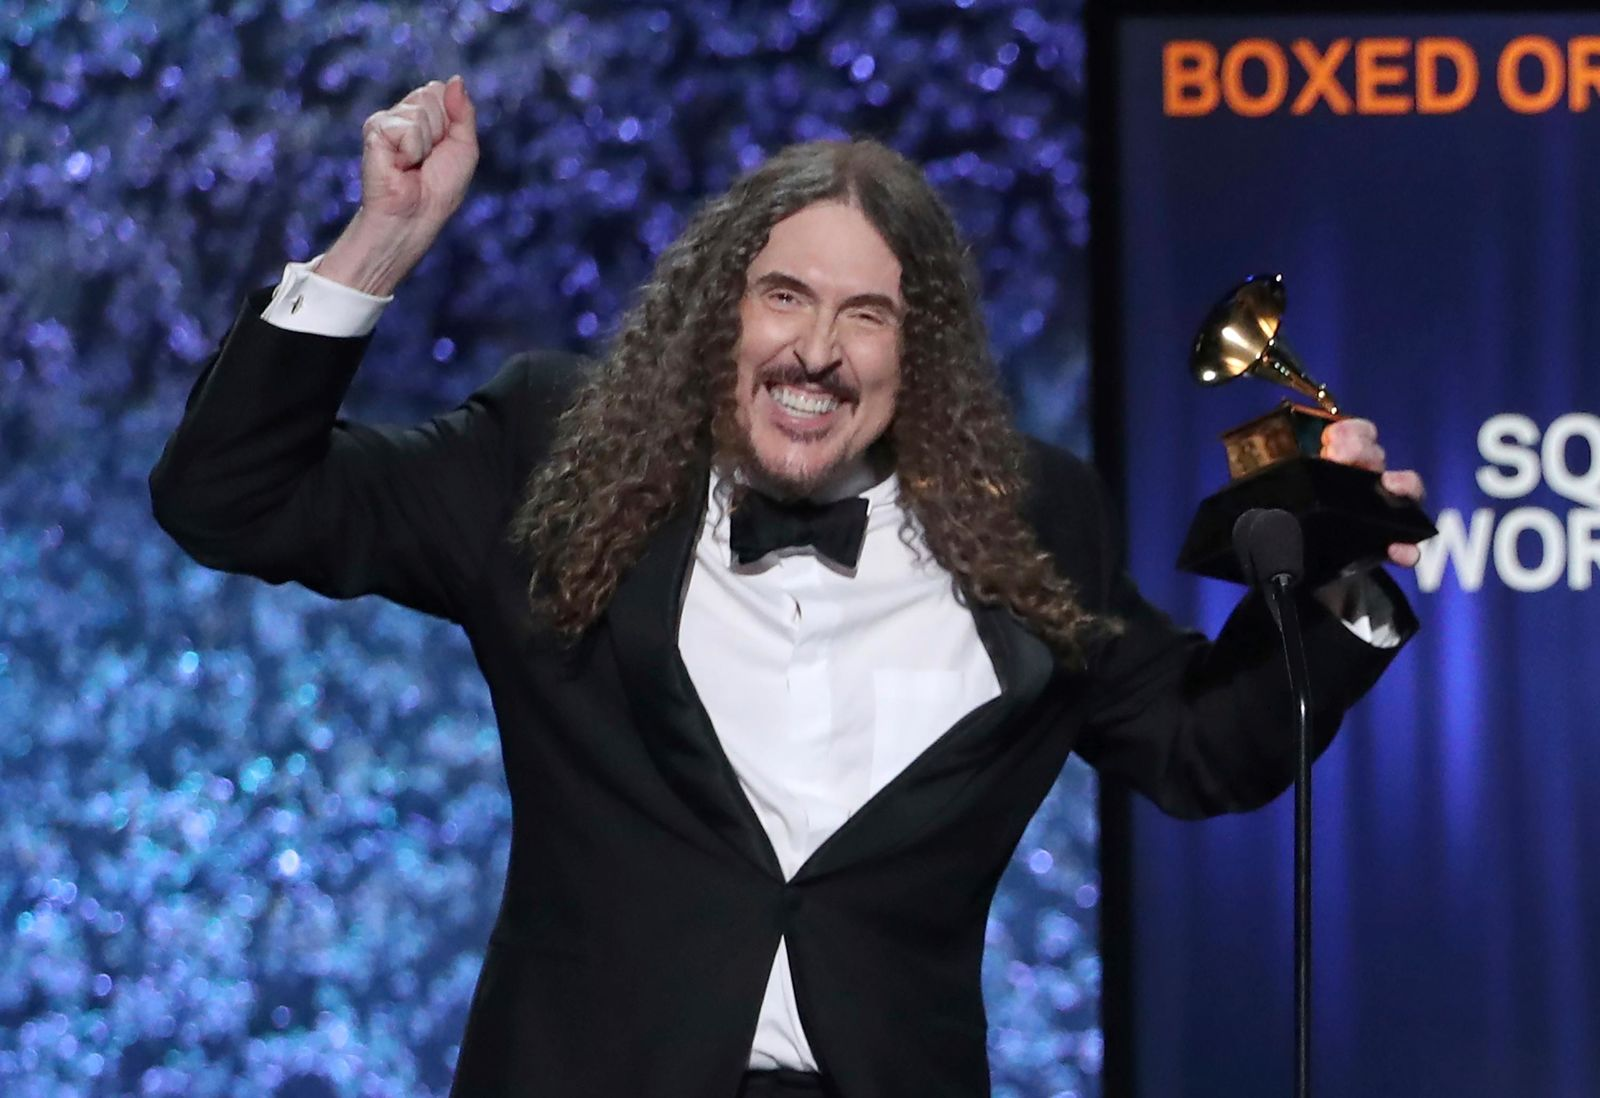 """Weird Al"" Yankovic accepts the award for best boxed or special limited edition package for ""Squeeze Box: The Complete Works of 'Weird Al' Yankovic"" at the 61st annual Grammy Awards on Sunday, Feb. 10, 2019, in Los Angeles. (Photo by Matt Sayles/Invision/AP)"